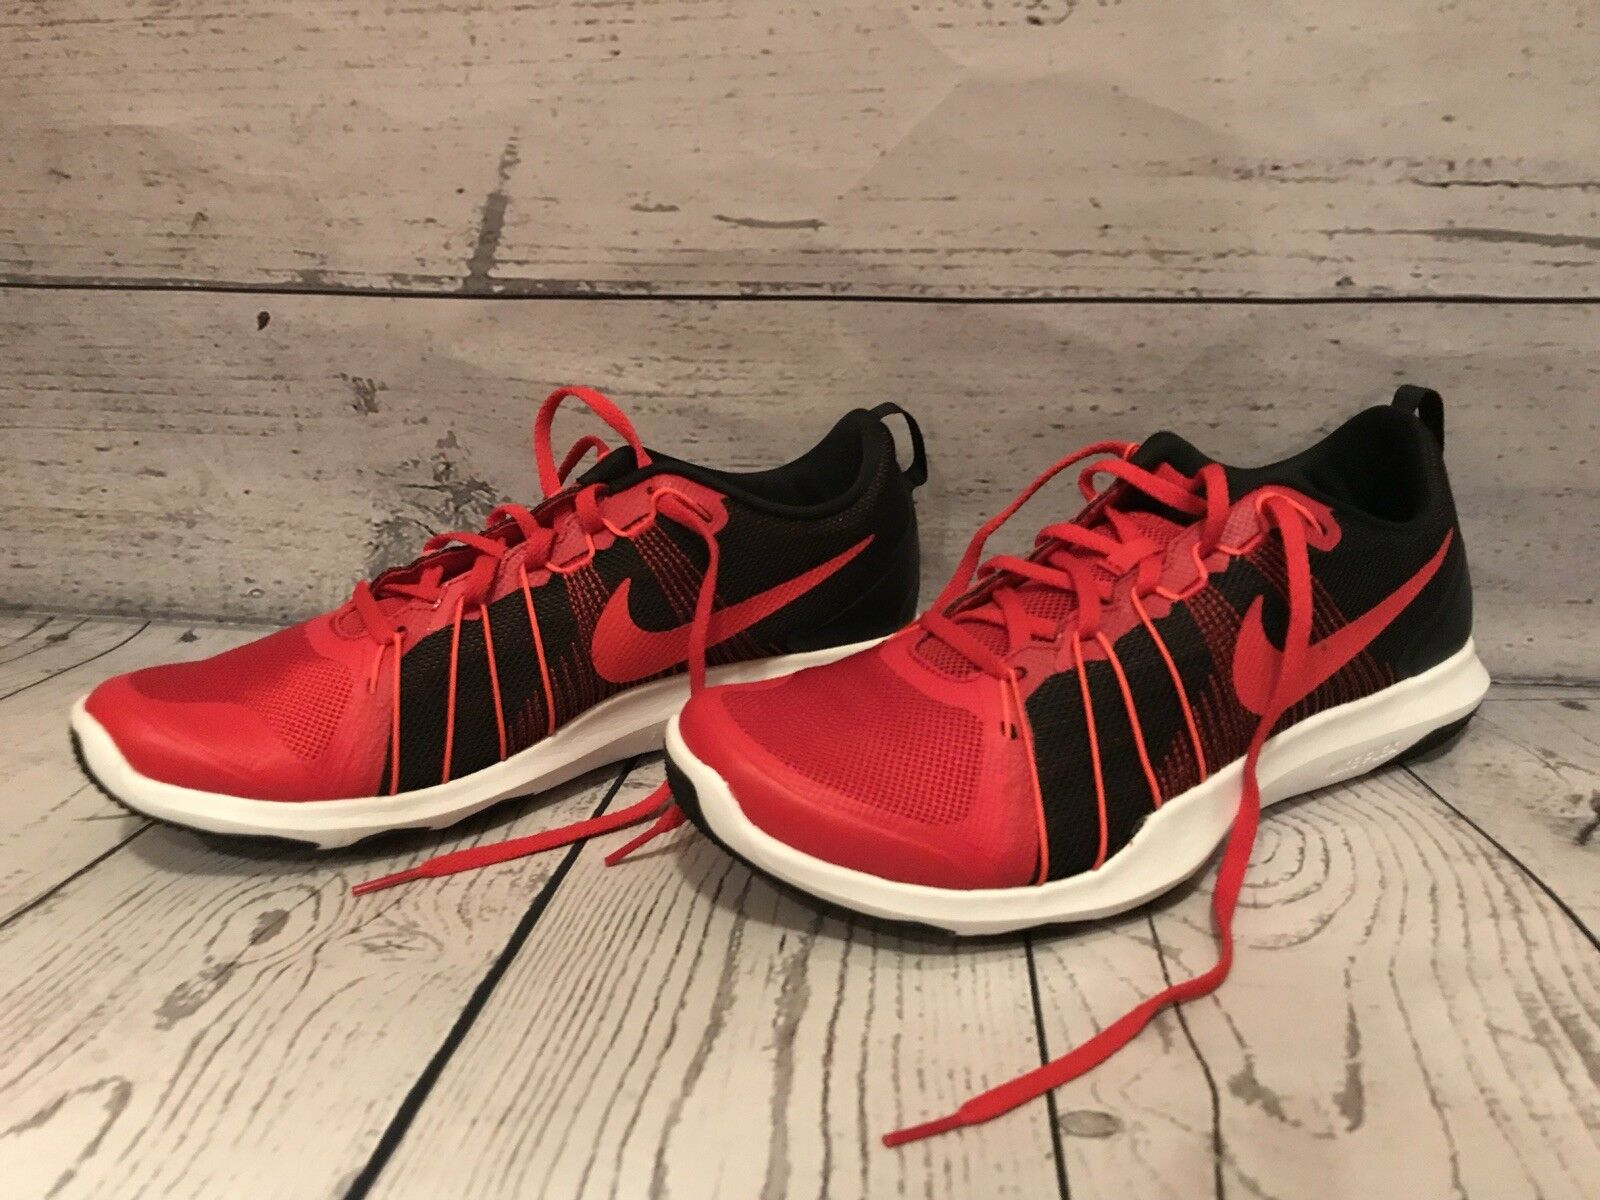 low priced 38ed8 1481a Nike Nike Nike Flex Train Aver Shoes Men s Size 10.5 Style 831568 600 NWOB  NEW fc2738